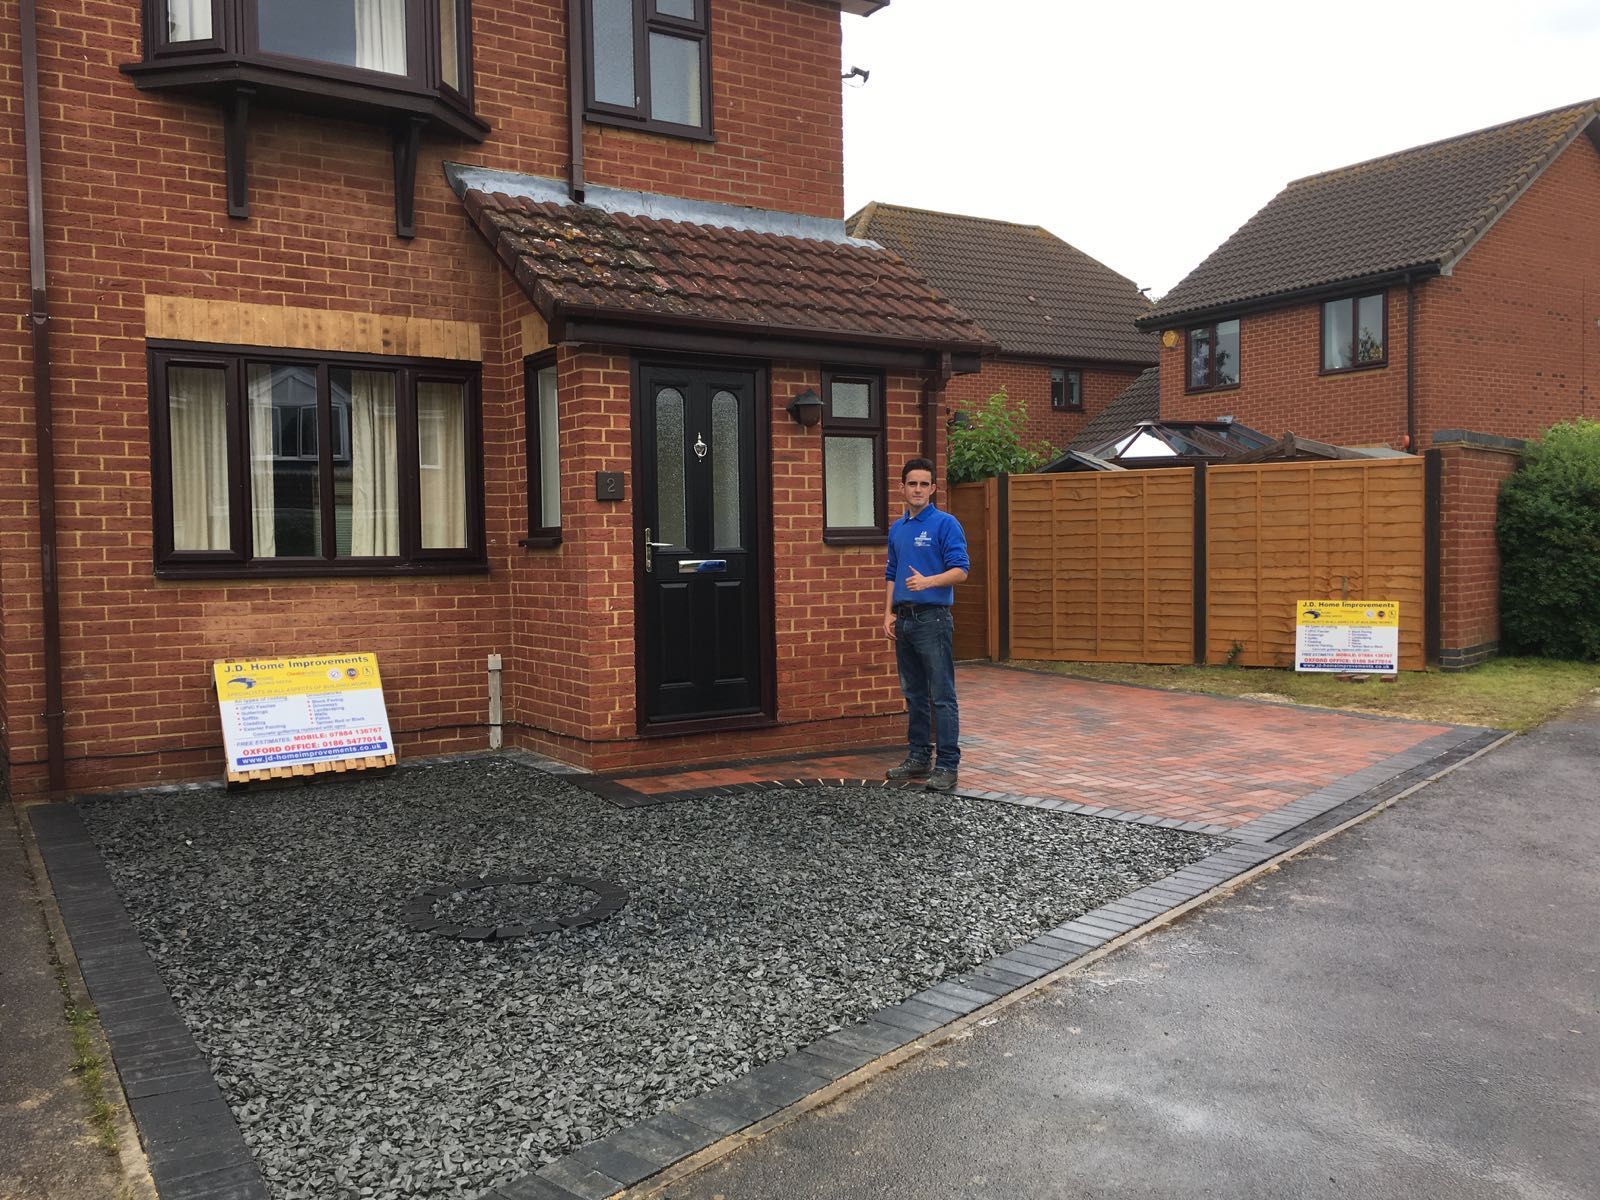 recent project for driveways in Yate - image shows a block paving driveway